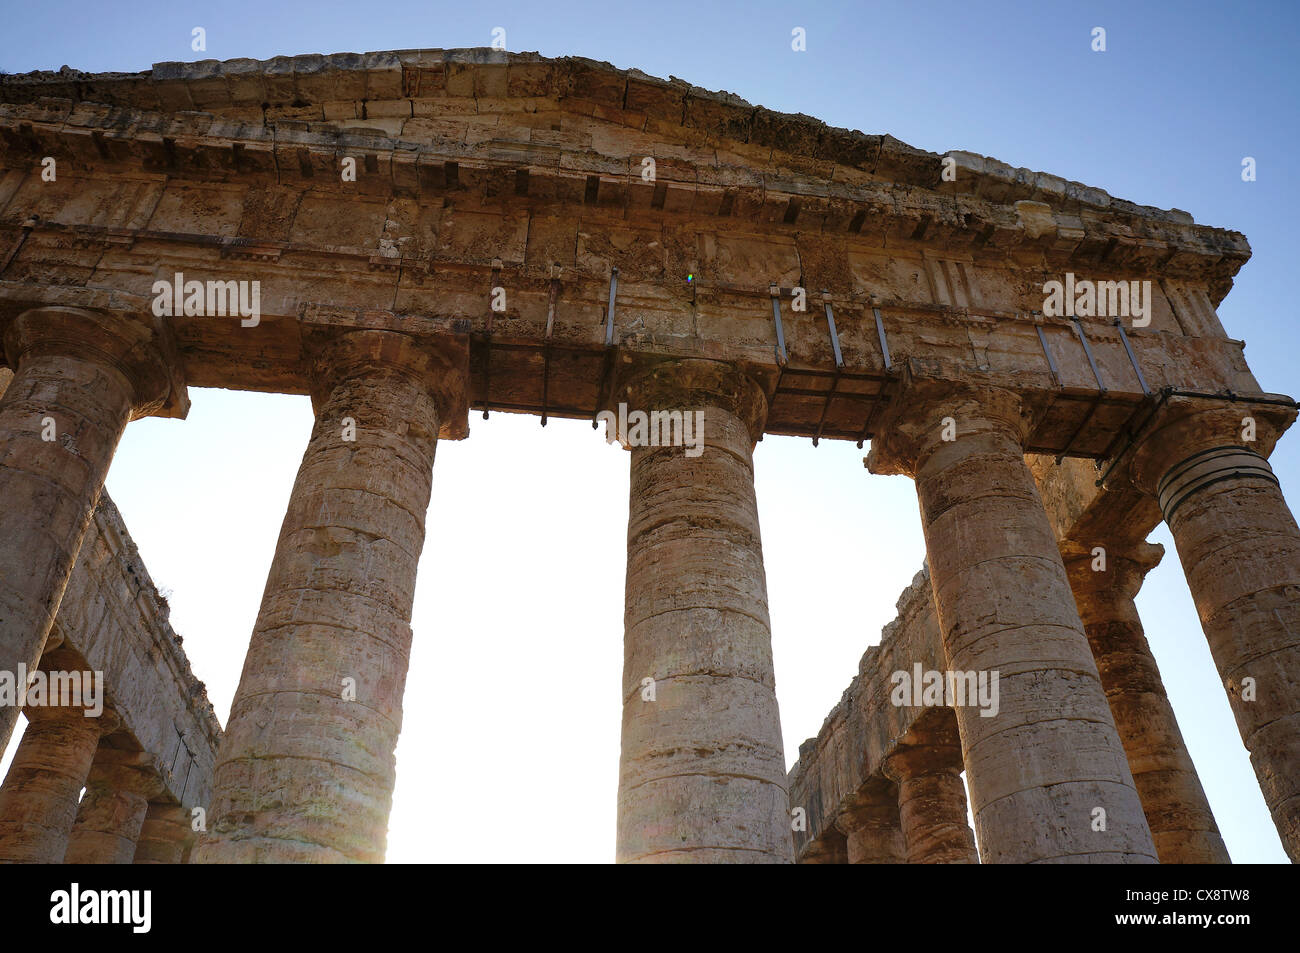 Facade of the Segesta temple with its stone pediment and columns - Stock Image